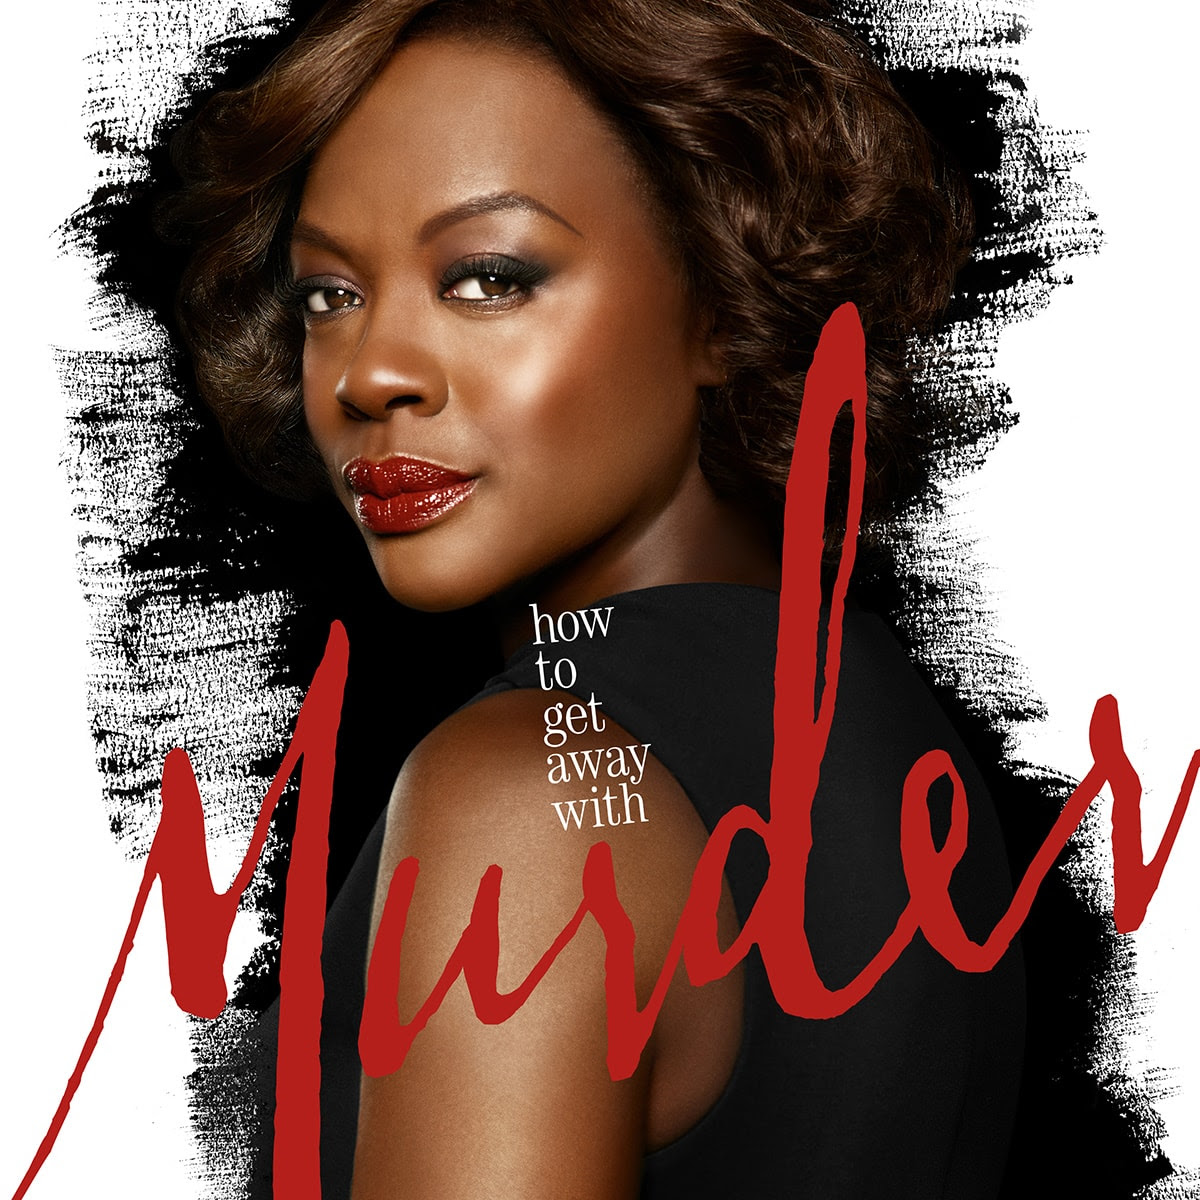 http://televisionpromos.com/wp-content/uploads/2014/05/How-to-Get-Away-with-Murder-Season-3-Artwork-ABC-TV-series-Viola-Davis.jpg